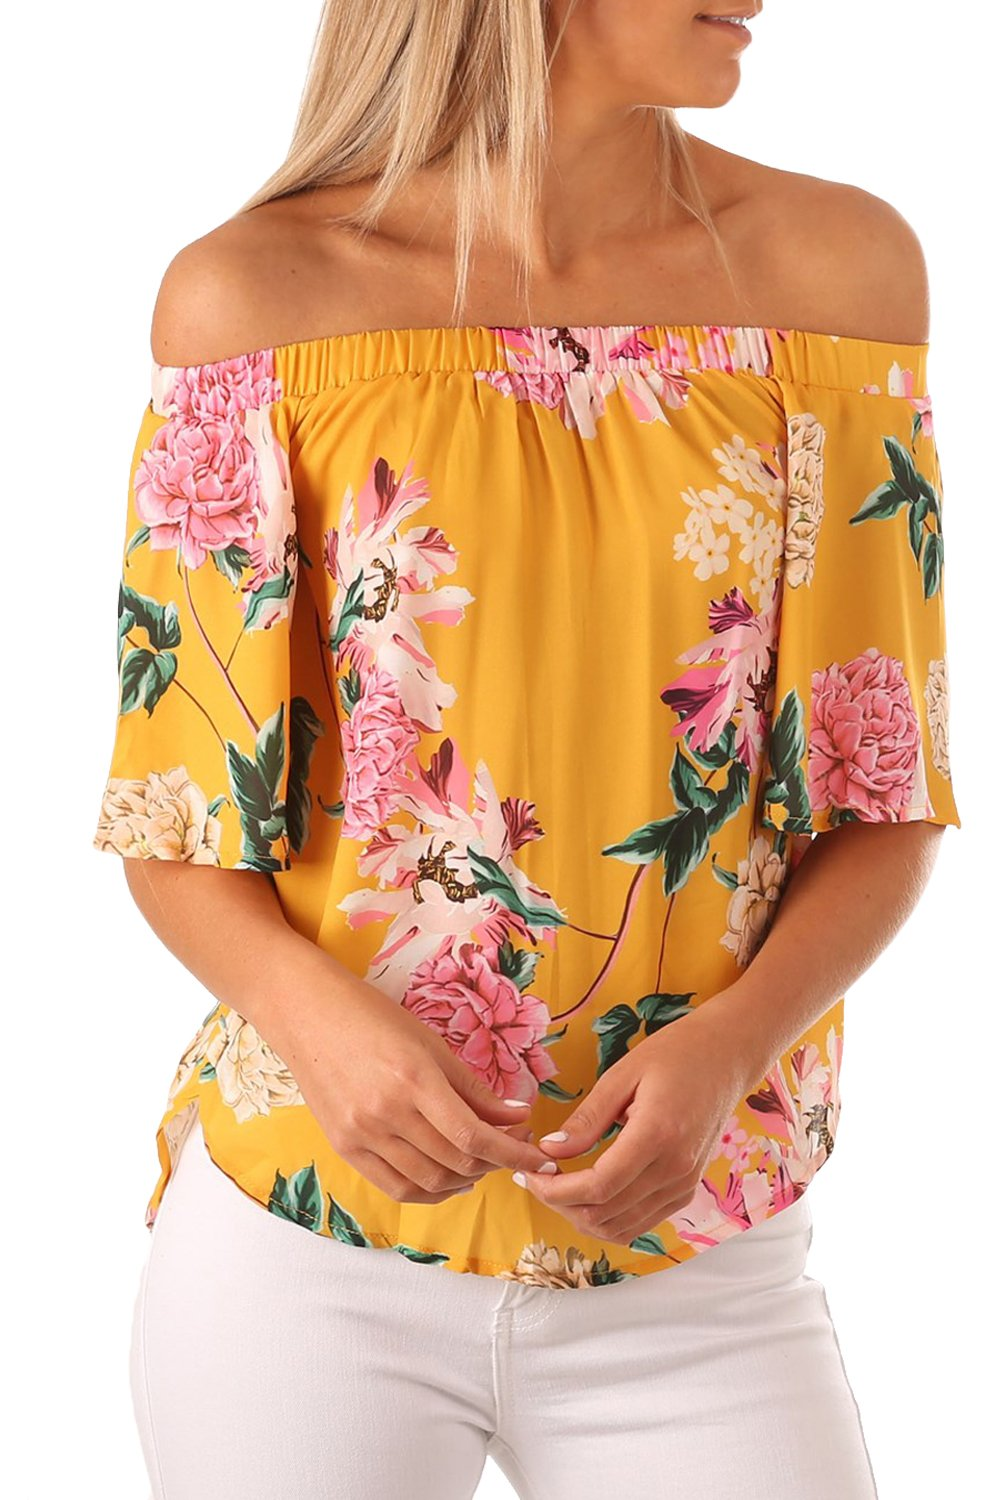 7741b5a1bc6e0 Yellow Floral Print Half Sleeve Off Shoulder Blouse in 2019 ...